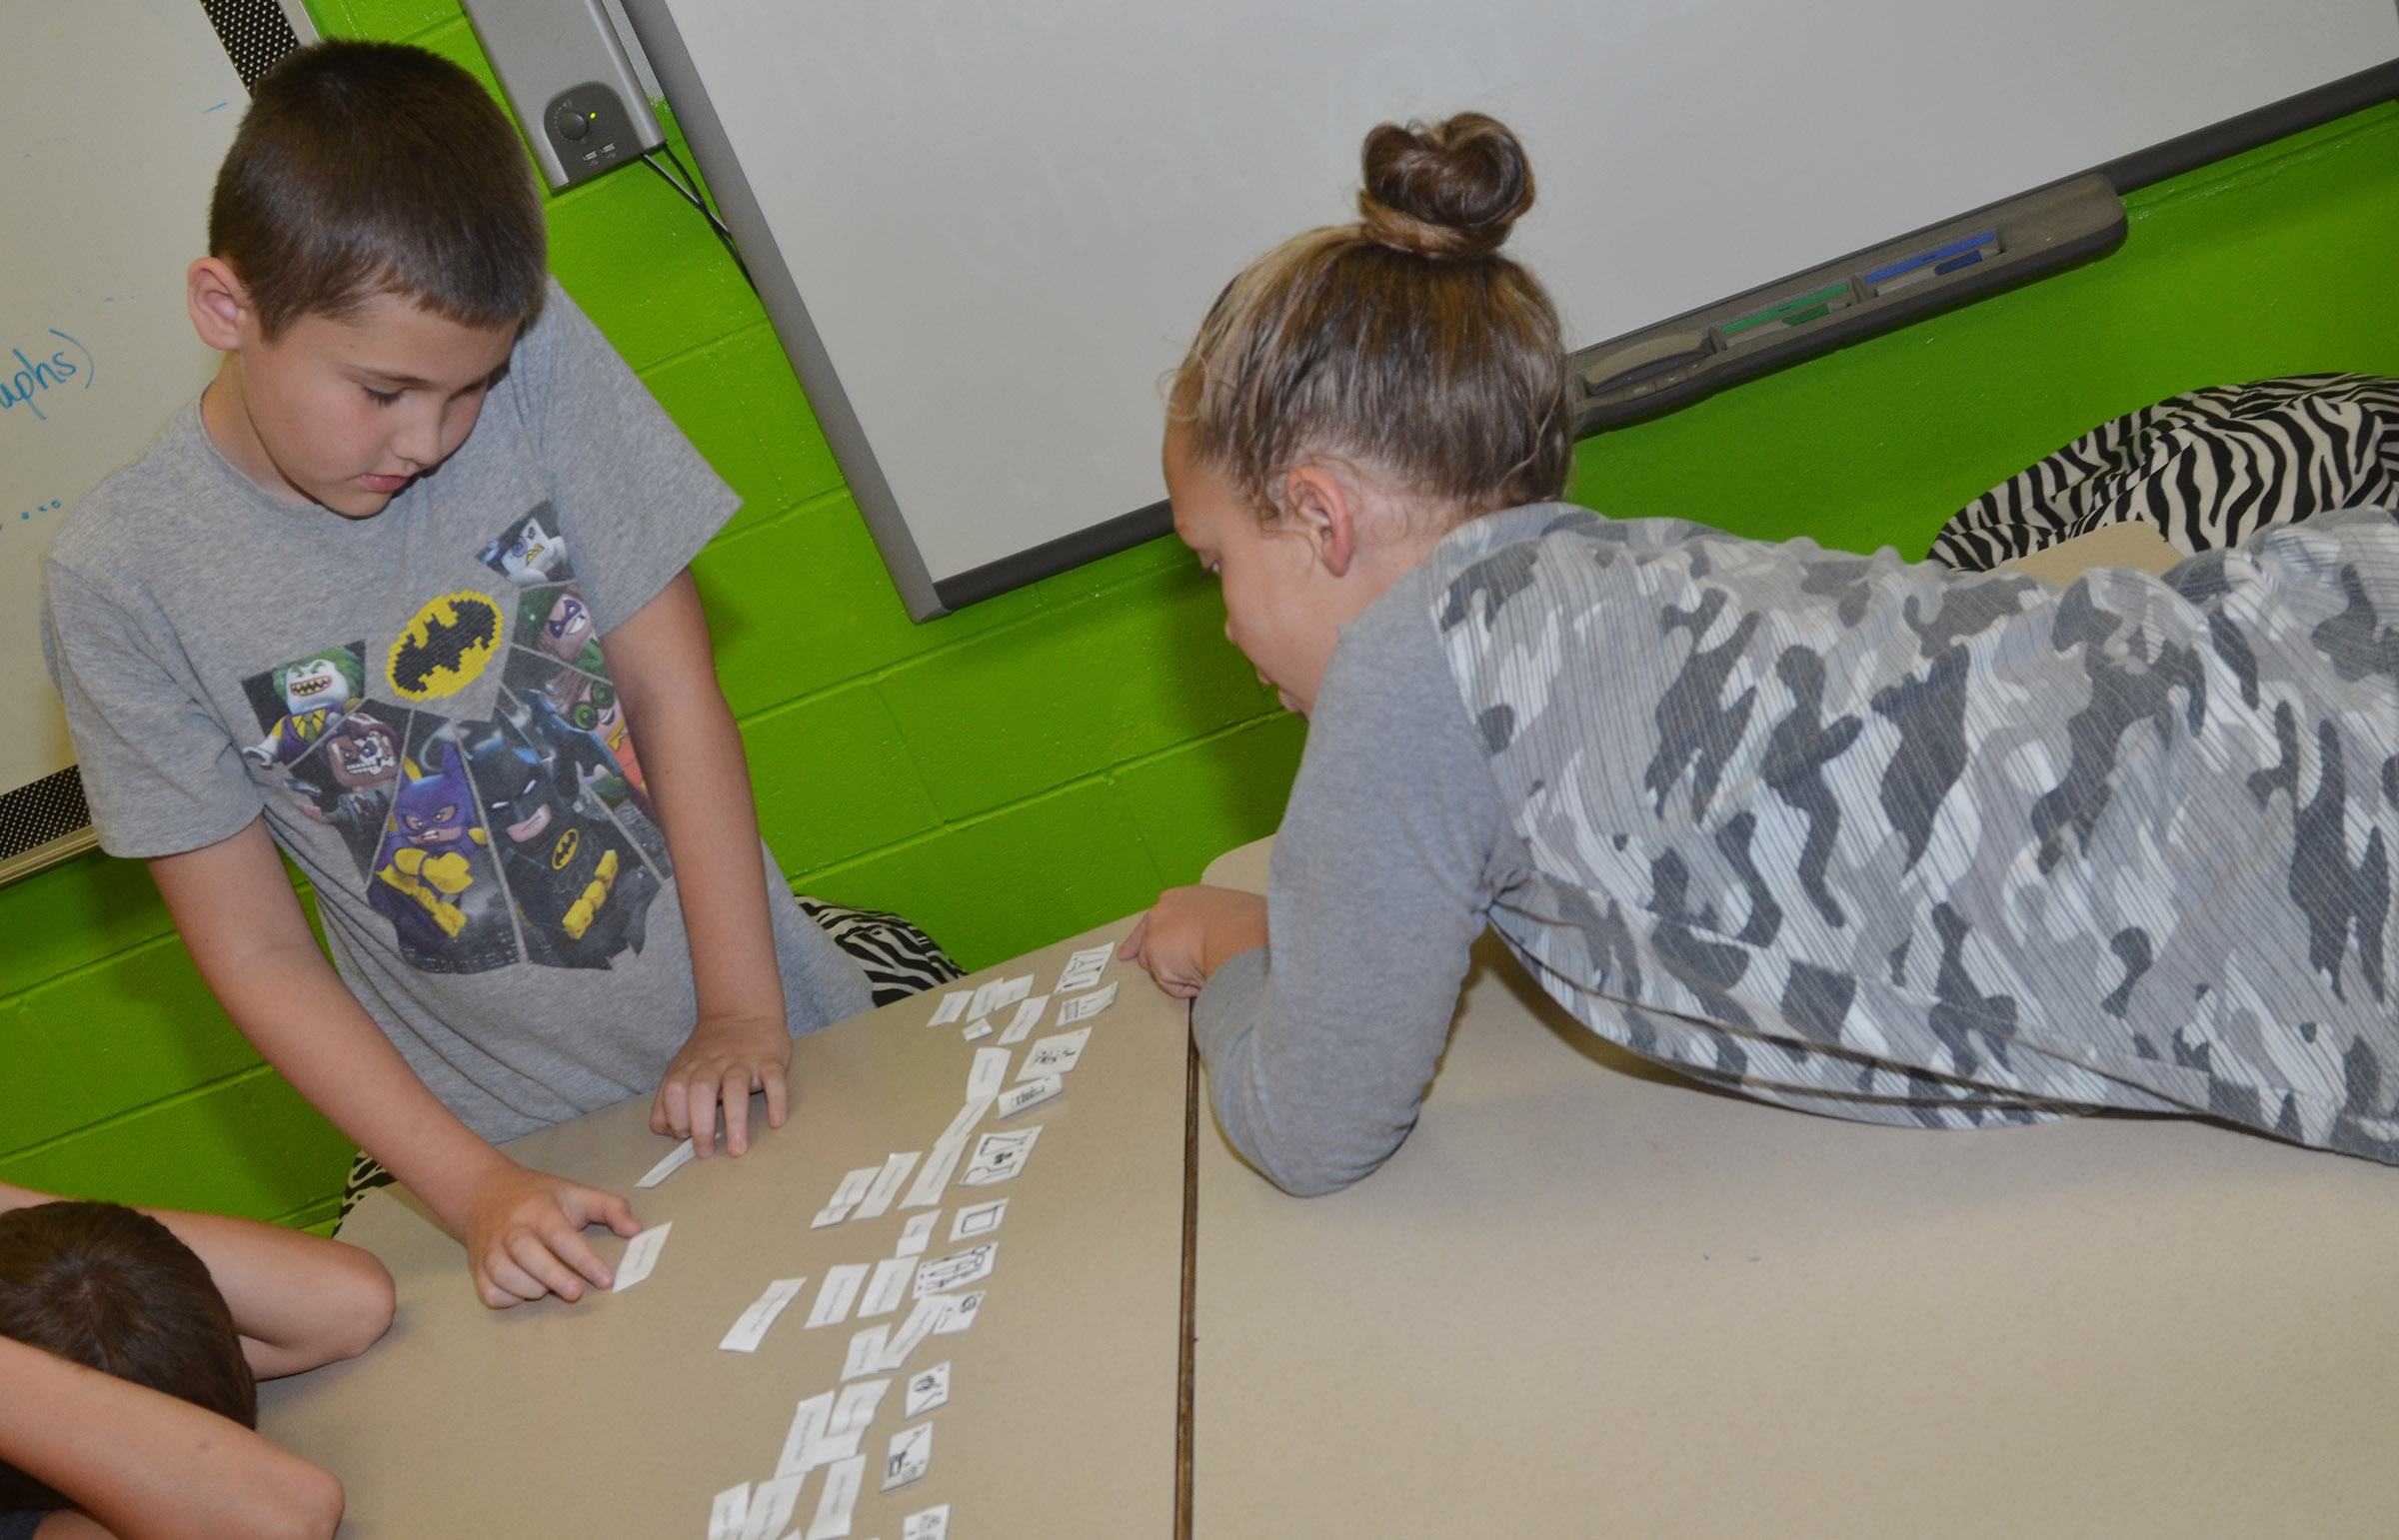 CES fifth-graders Michael Abel, at left, and Deanna Reardon check their scientific terms to see if they are paired with the right pictures.